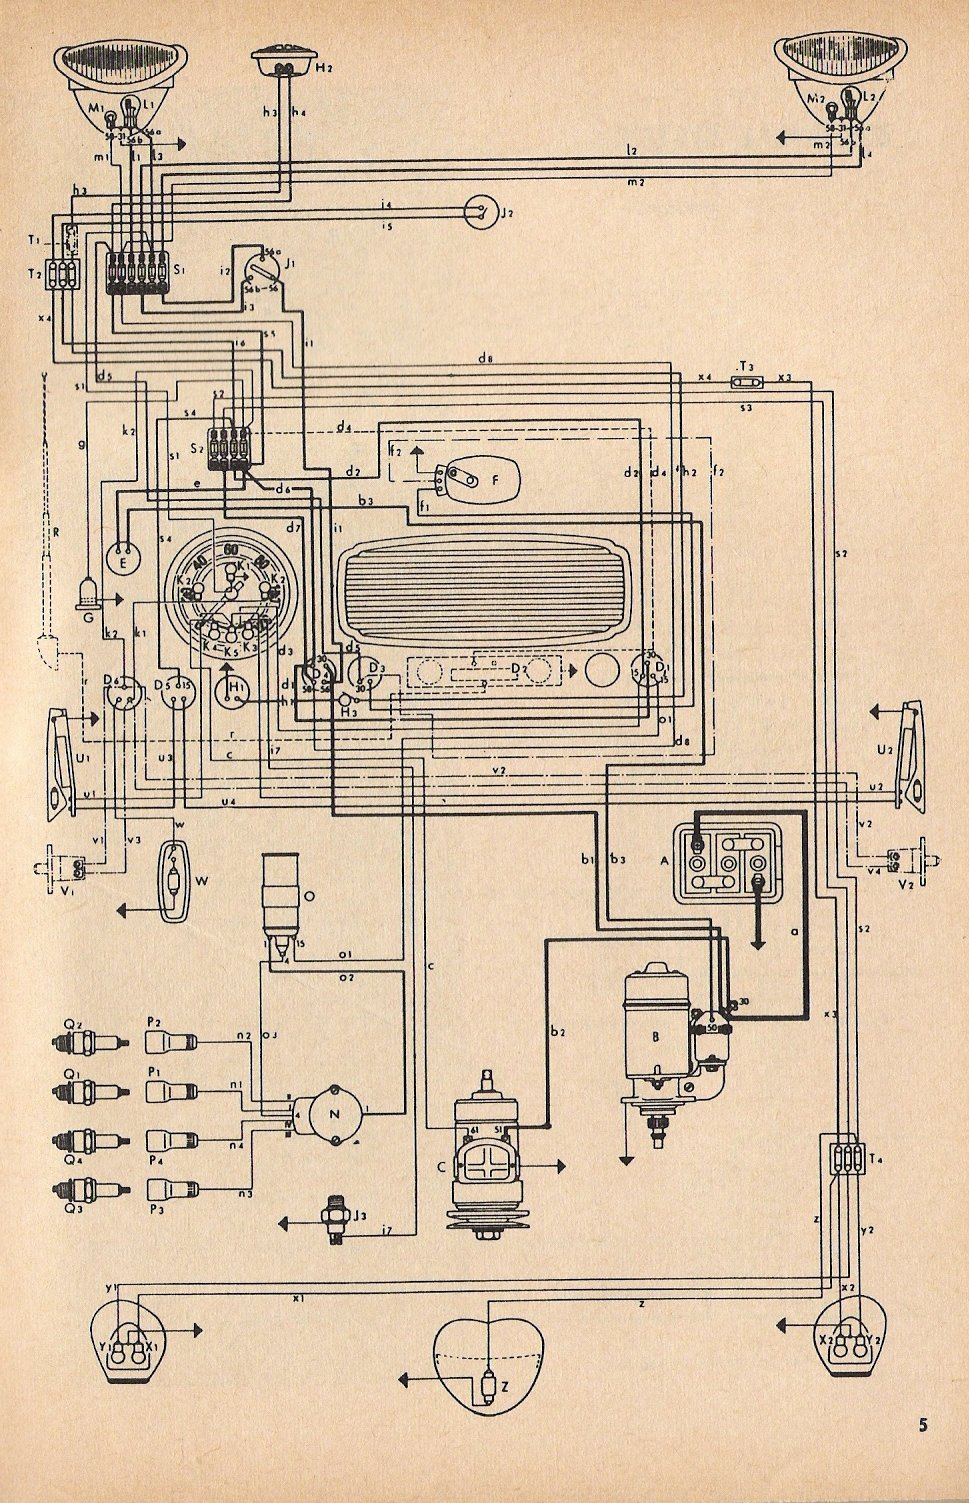 1961 Vw Wiring Diagram Diagrams Dune Buggy Thesamba Com Type 1